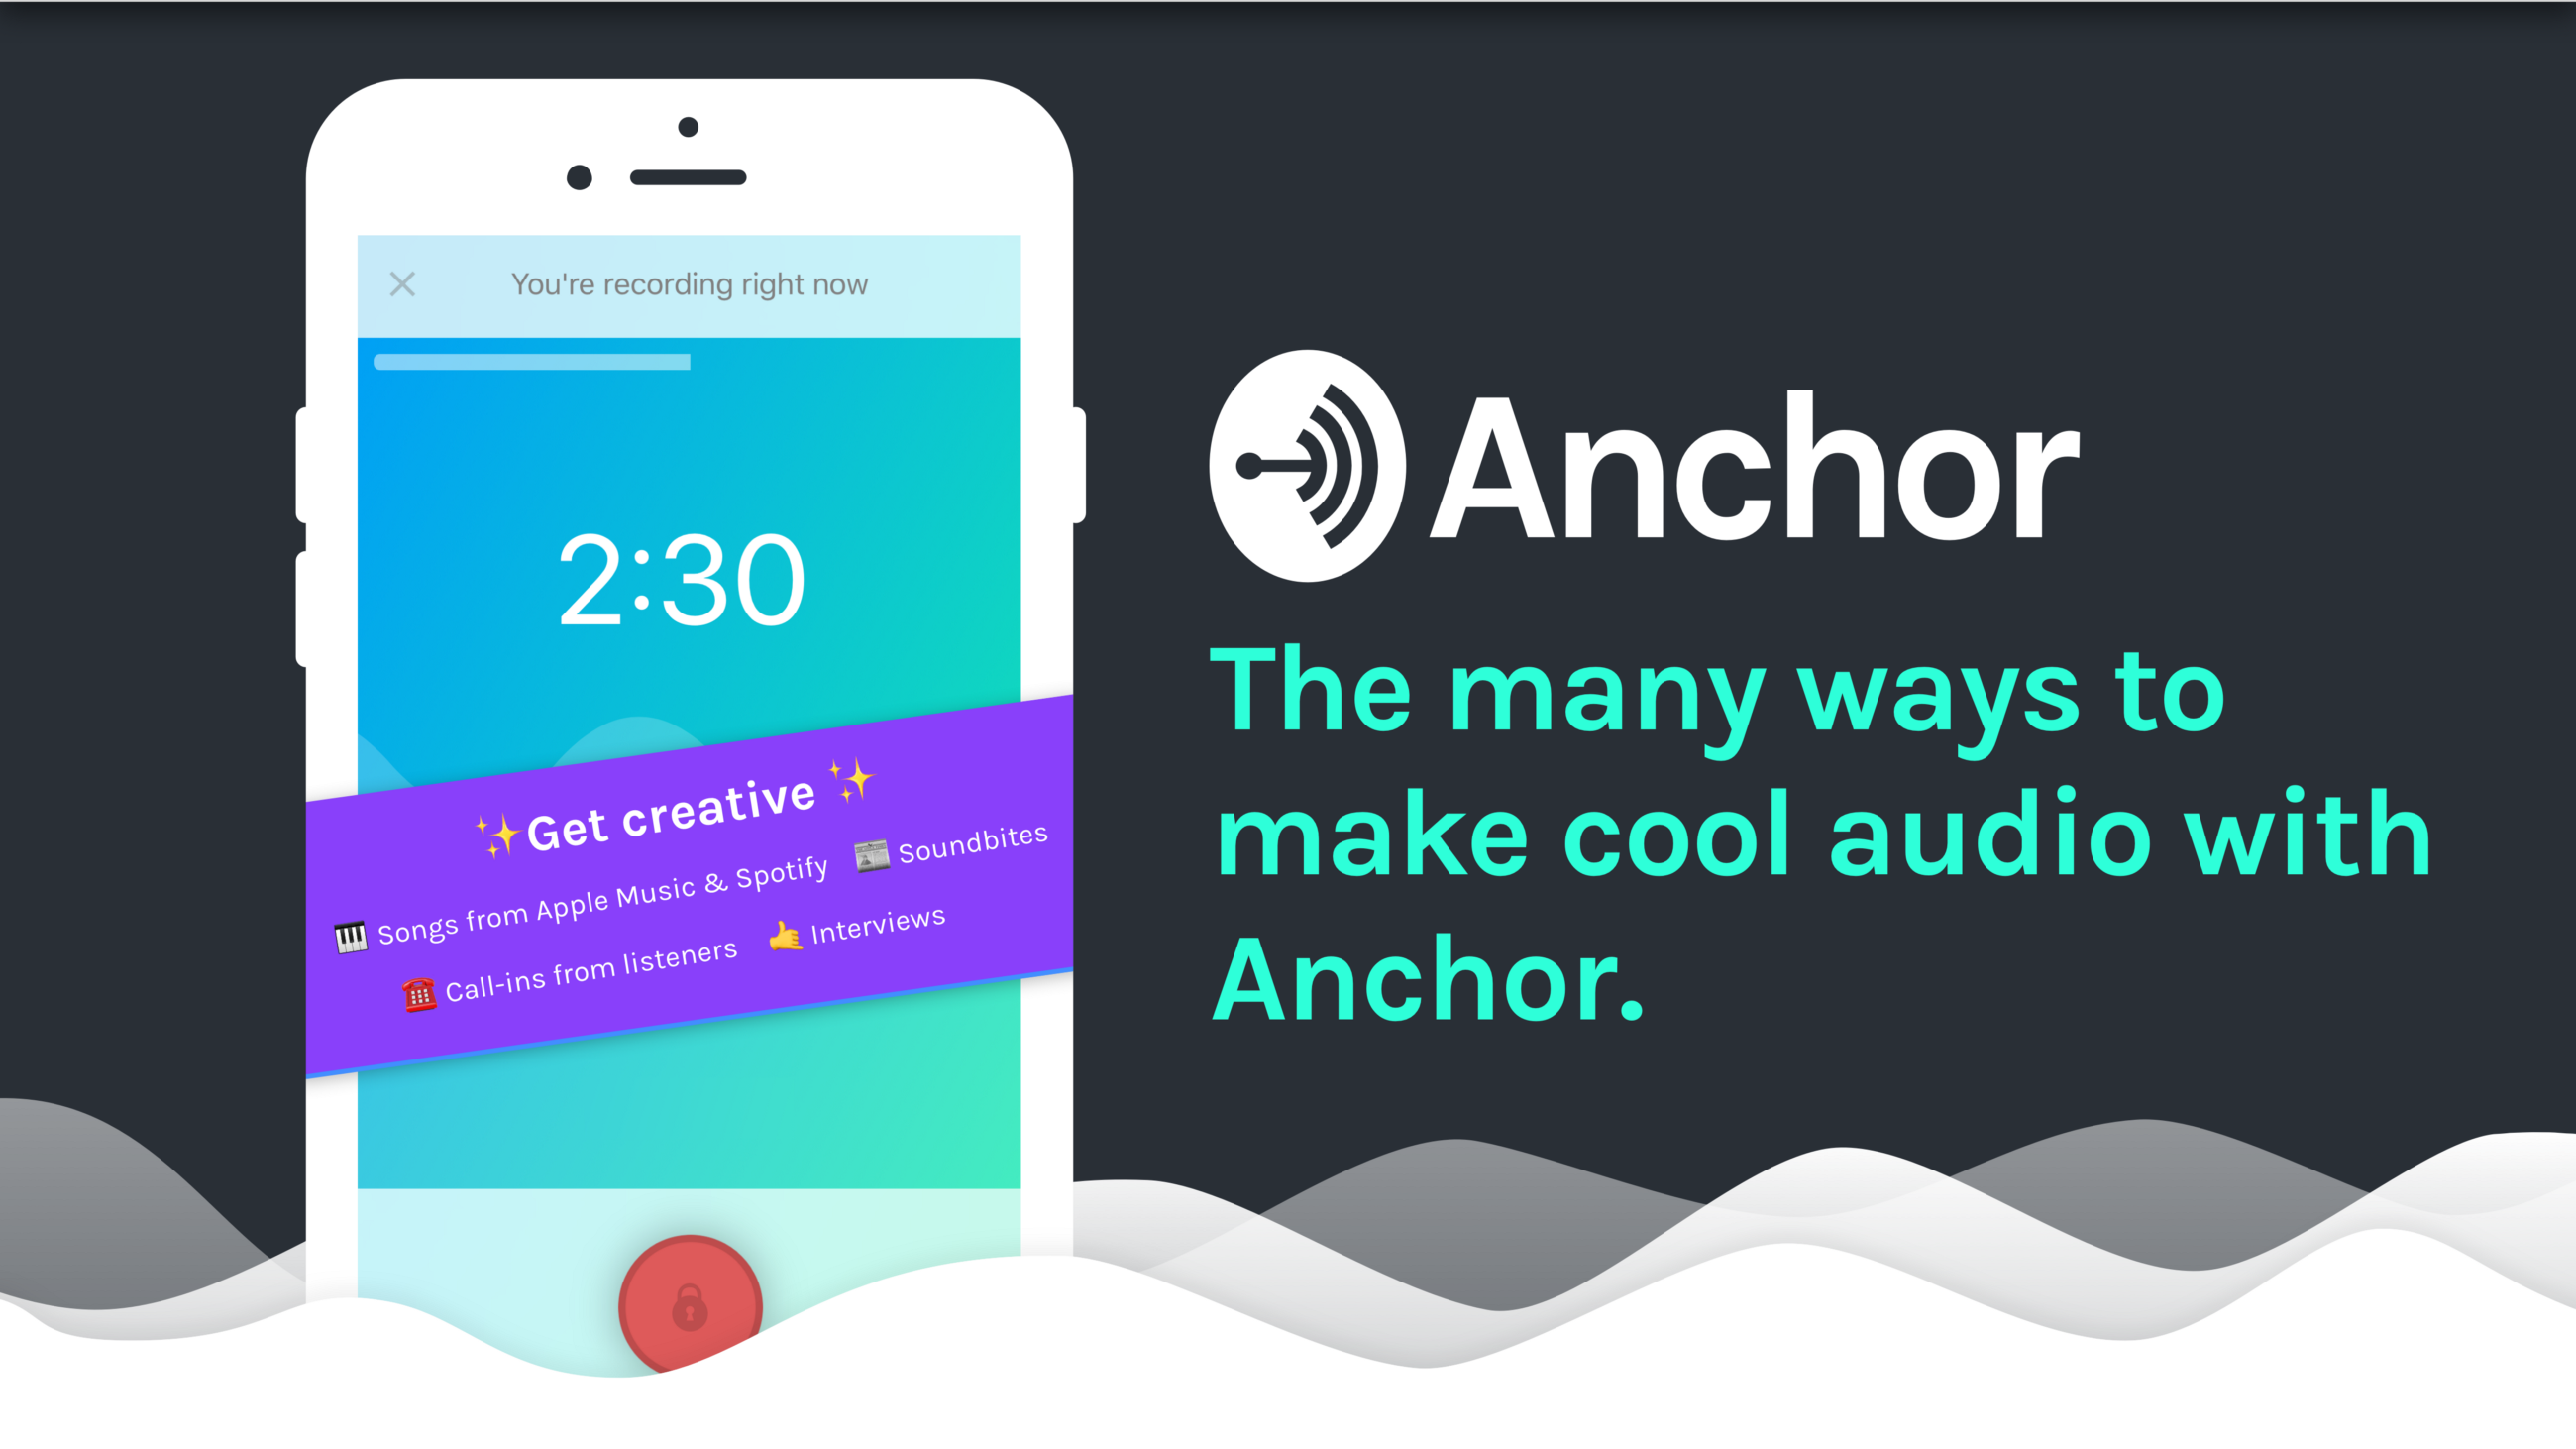 The many ways to make audio with Anchor - By